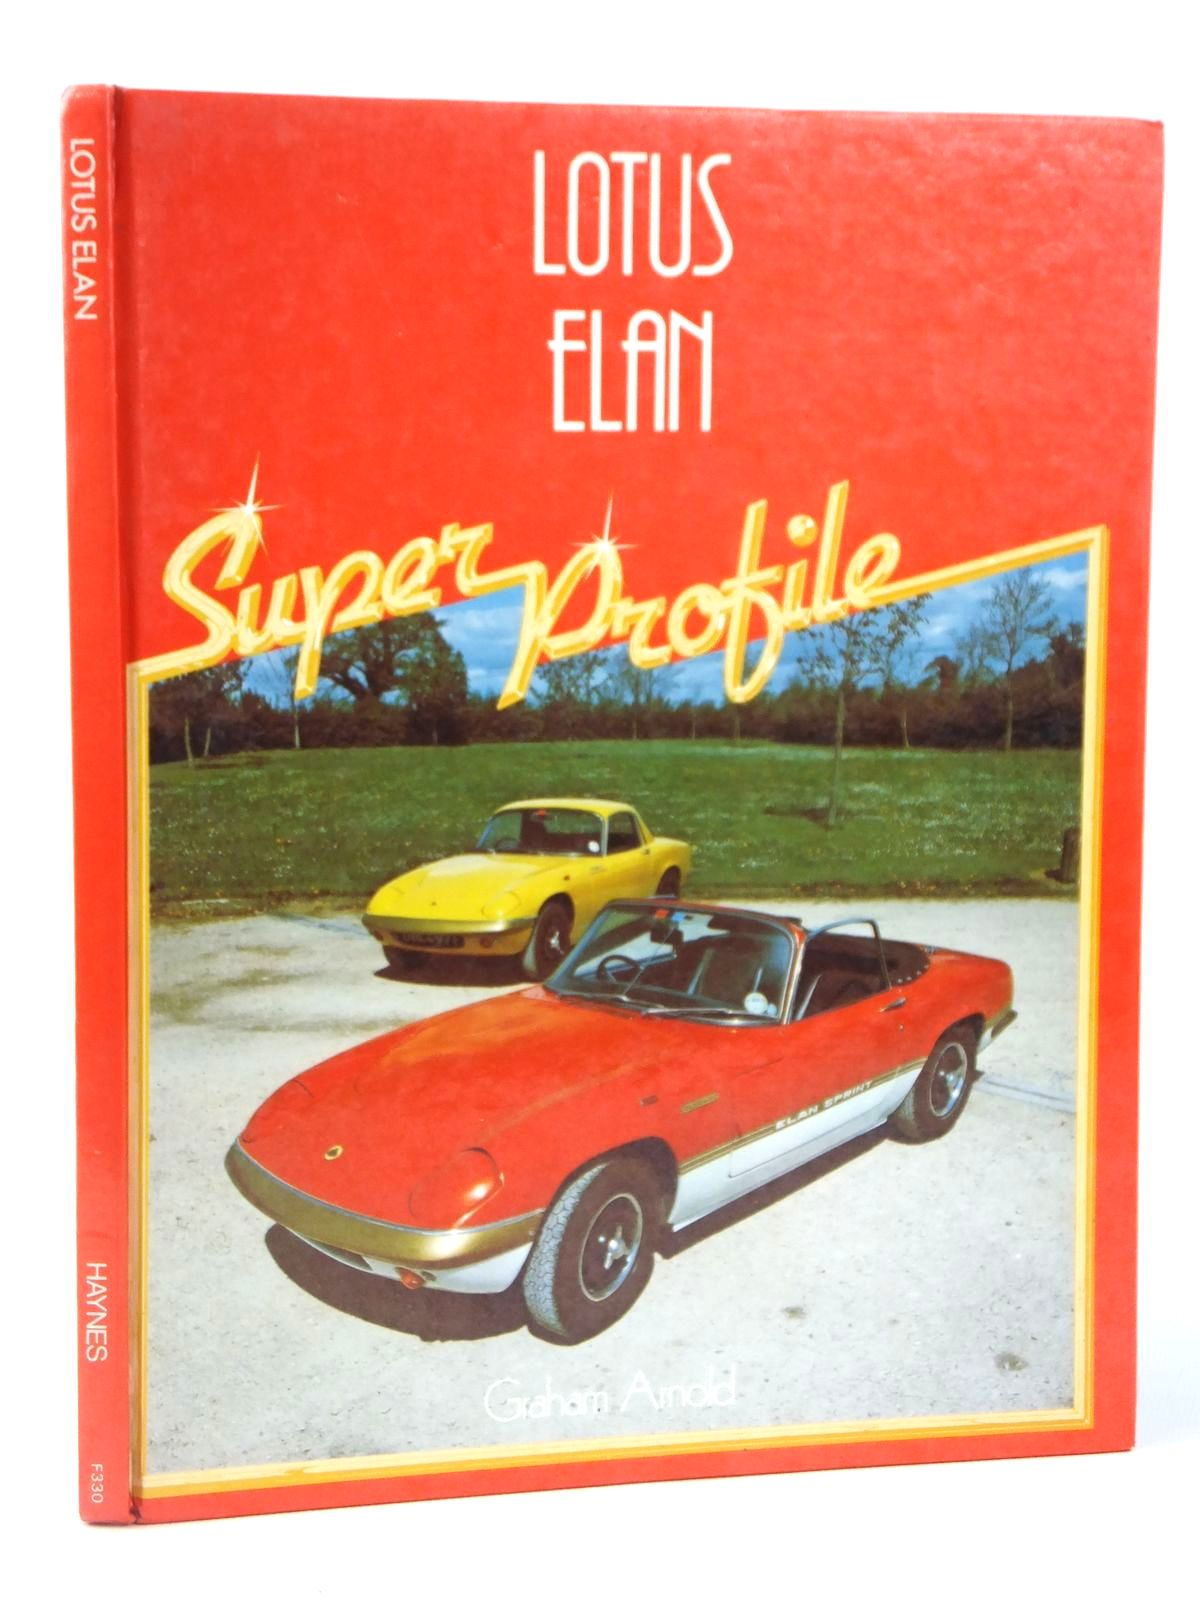 Photo of LOTUS ELAN written by Arnold, Graham published by Haynes, Foulis (STOCK CODE: 1608864)  for sale by Stella & Rose's Books